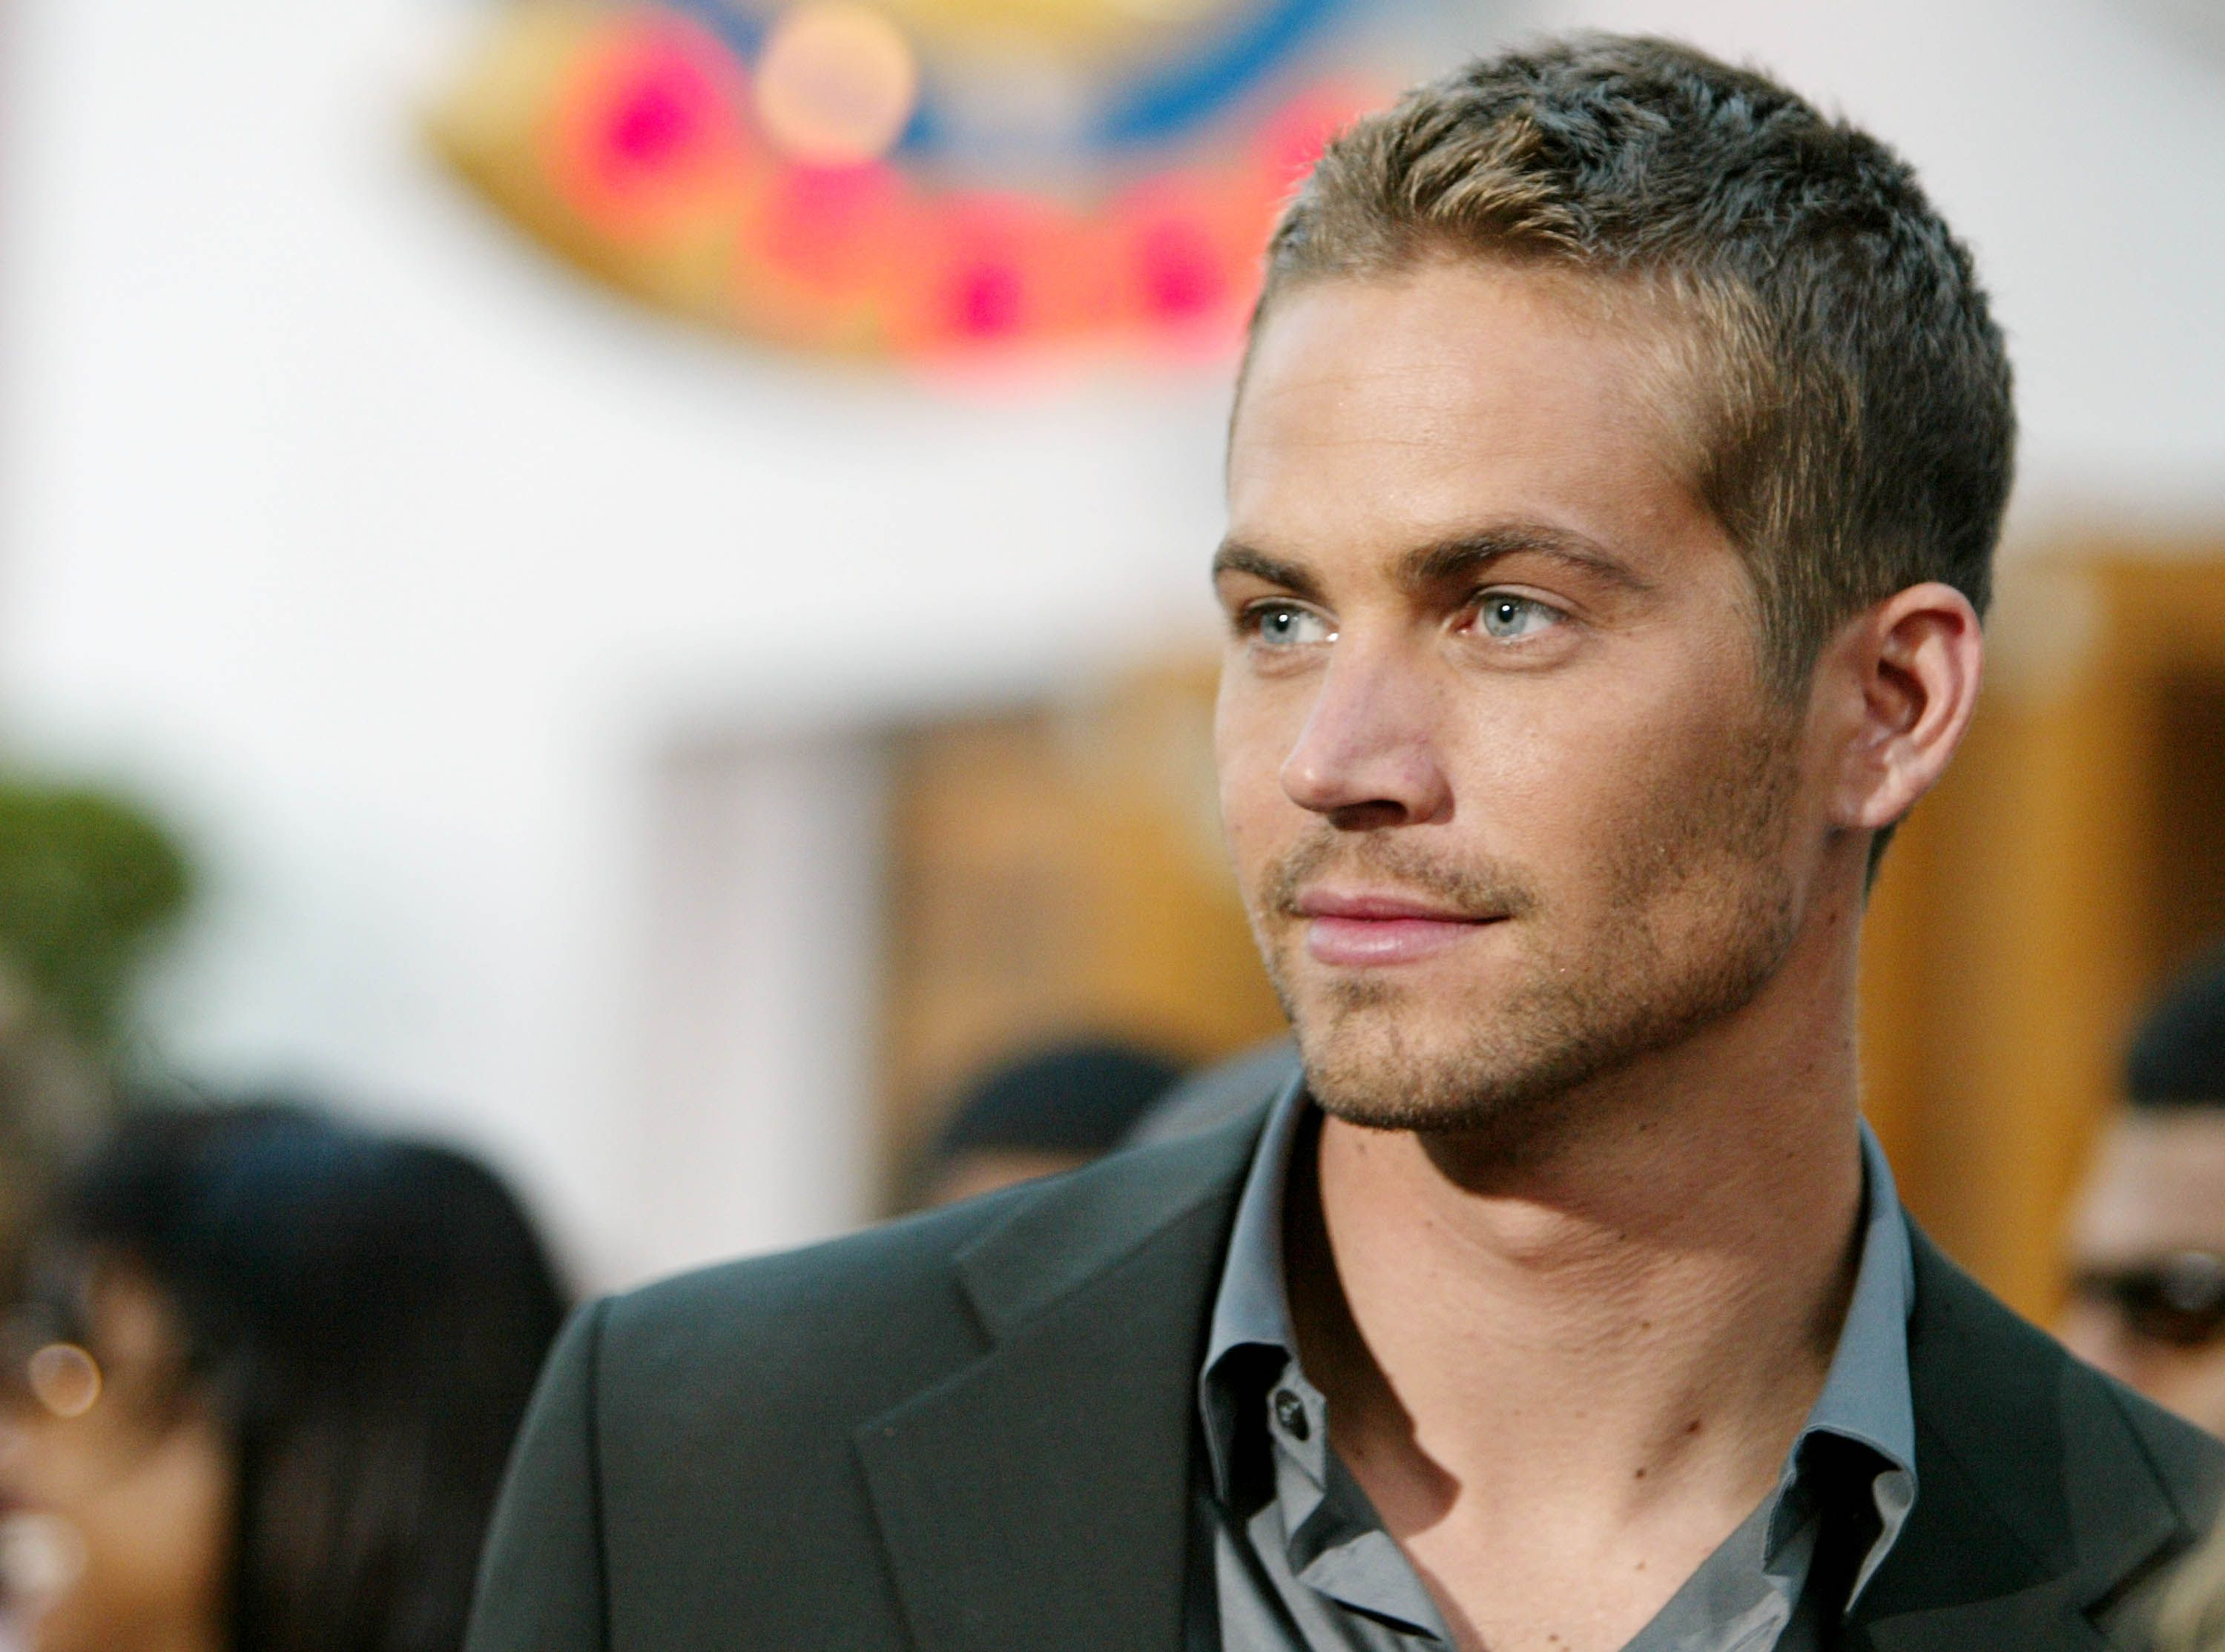 Paul Walker looks dazzling in this up-close photo by a paparazzi.